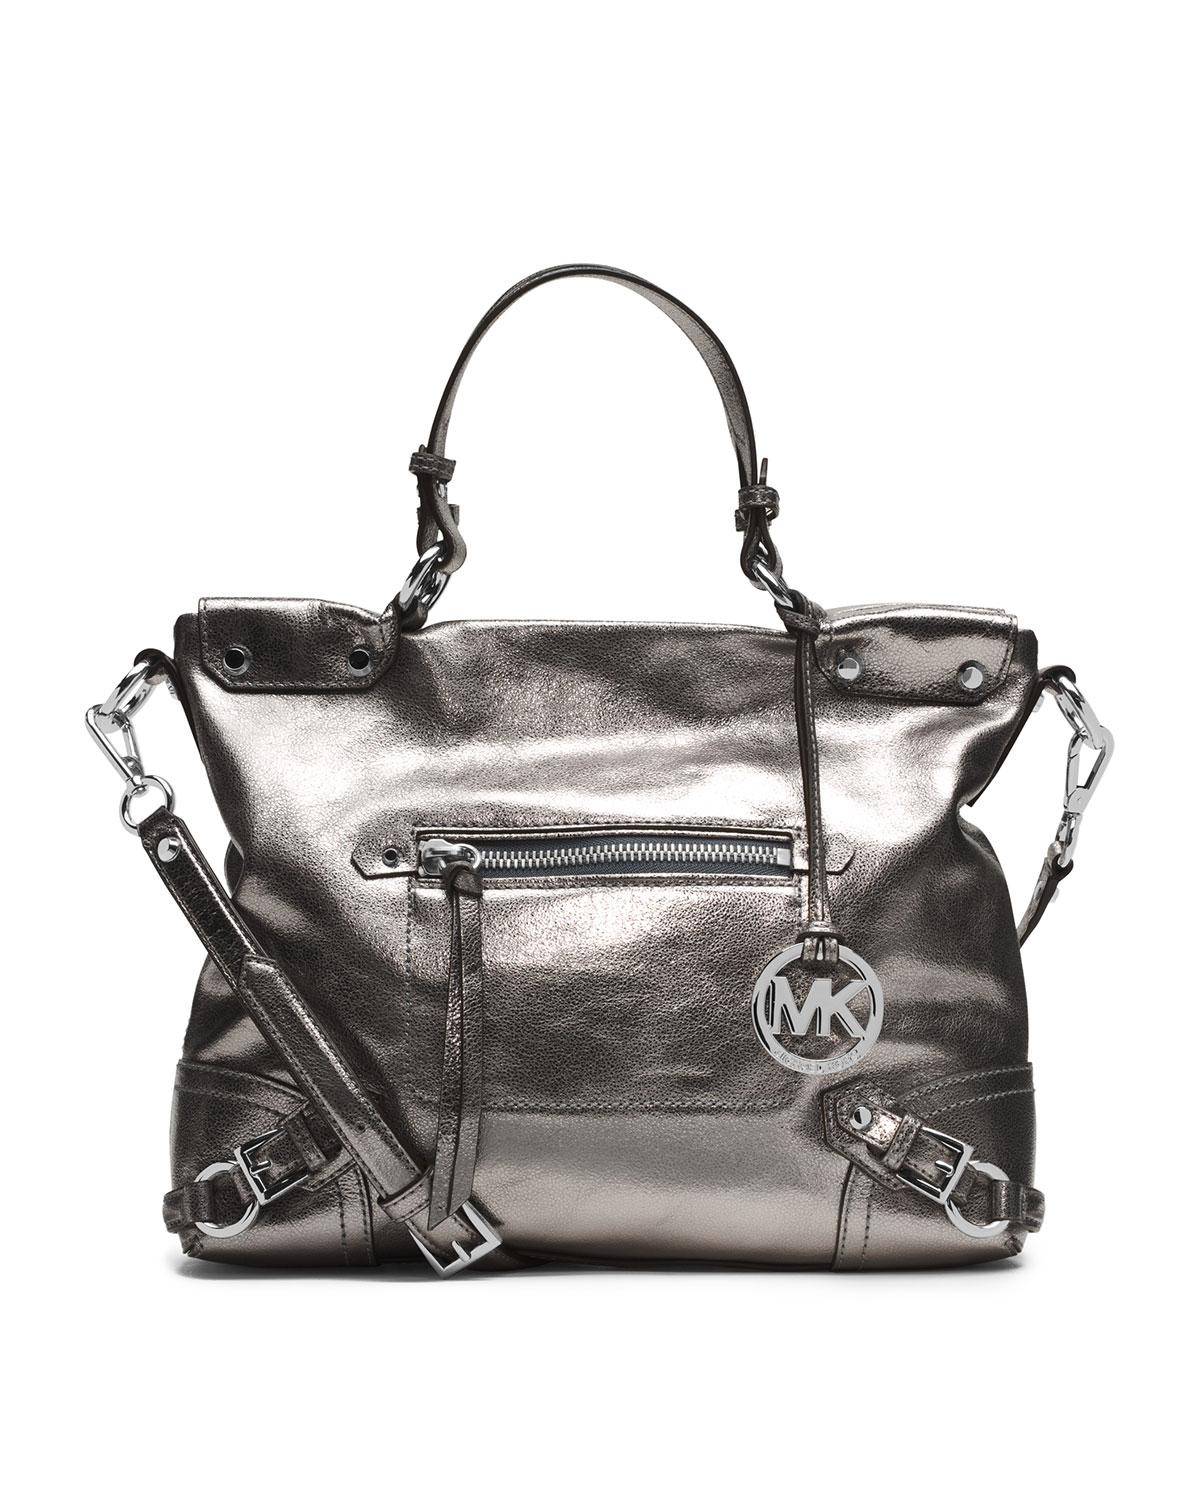 67743cbd42f6f Lyst - MICHAEL Michael Kors Medium Fallon Satchel in Metallic